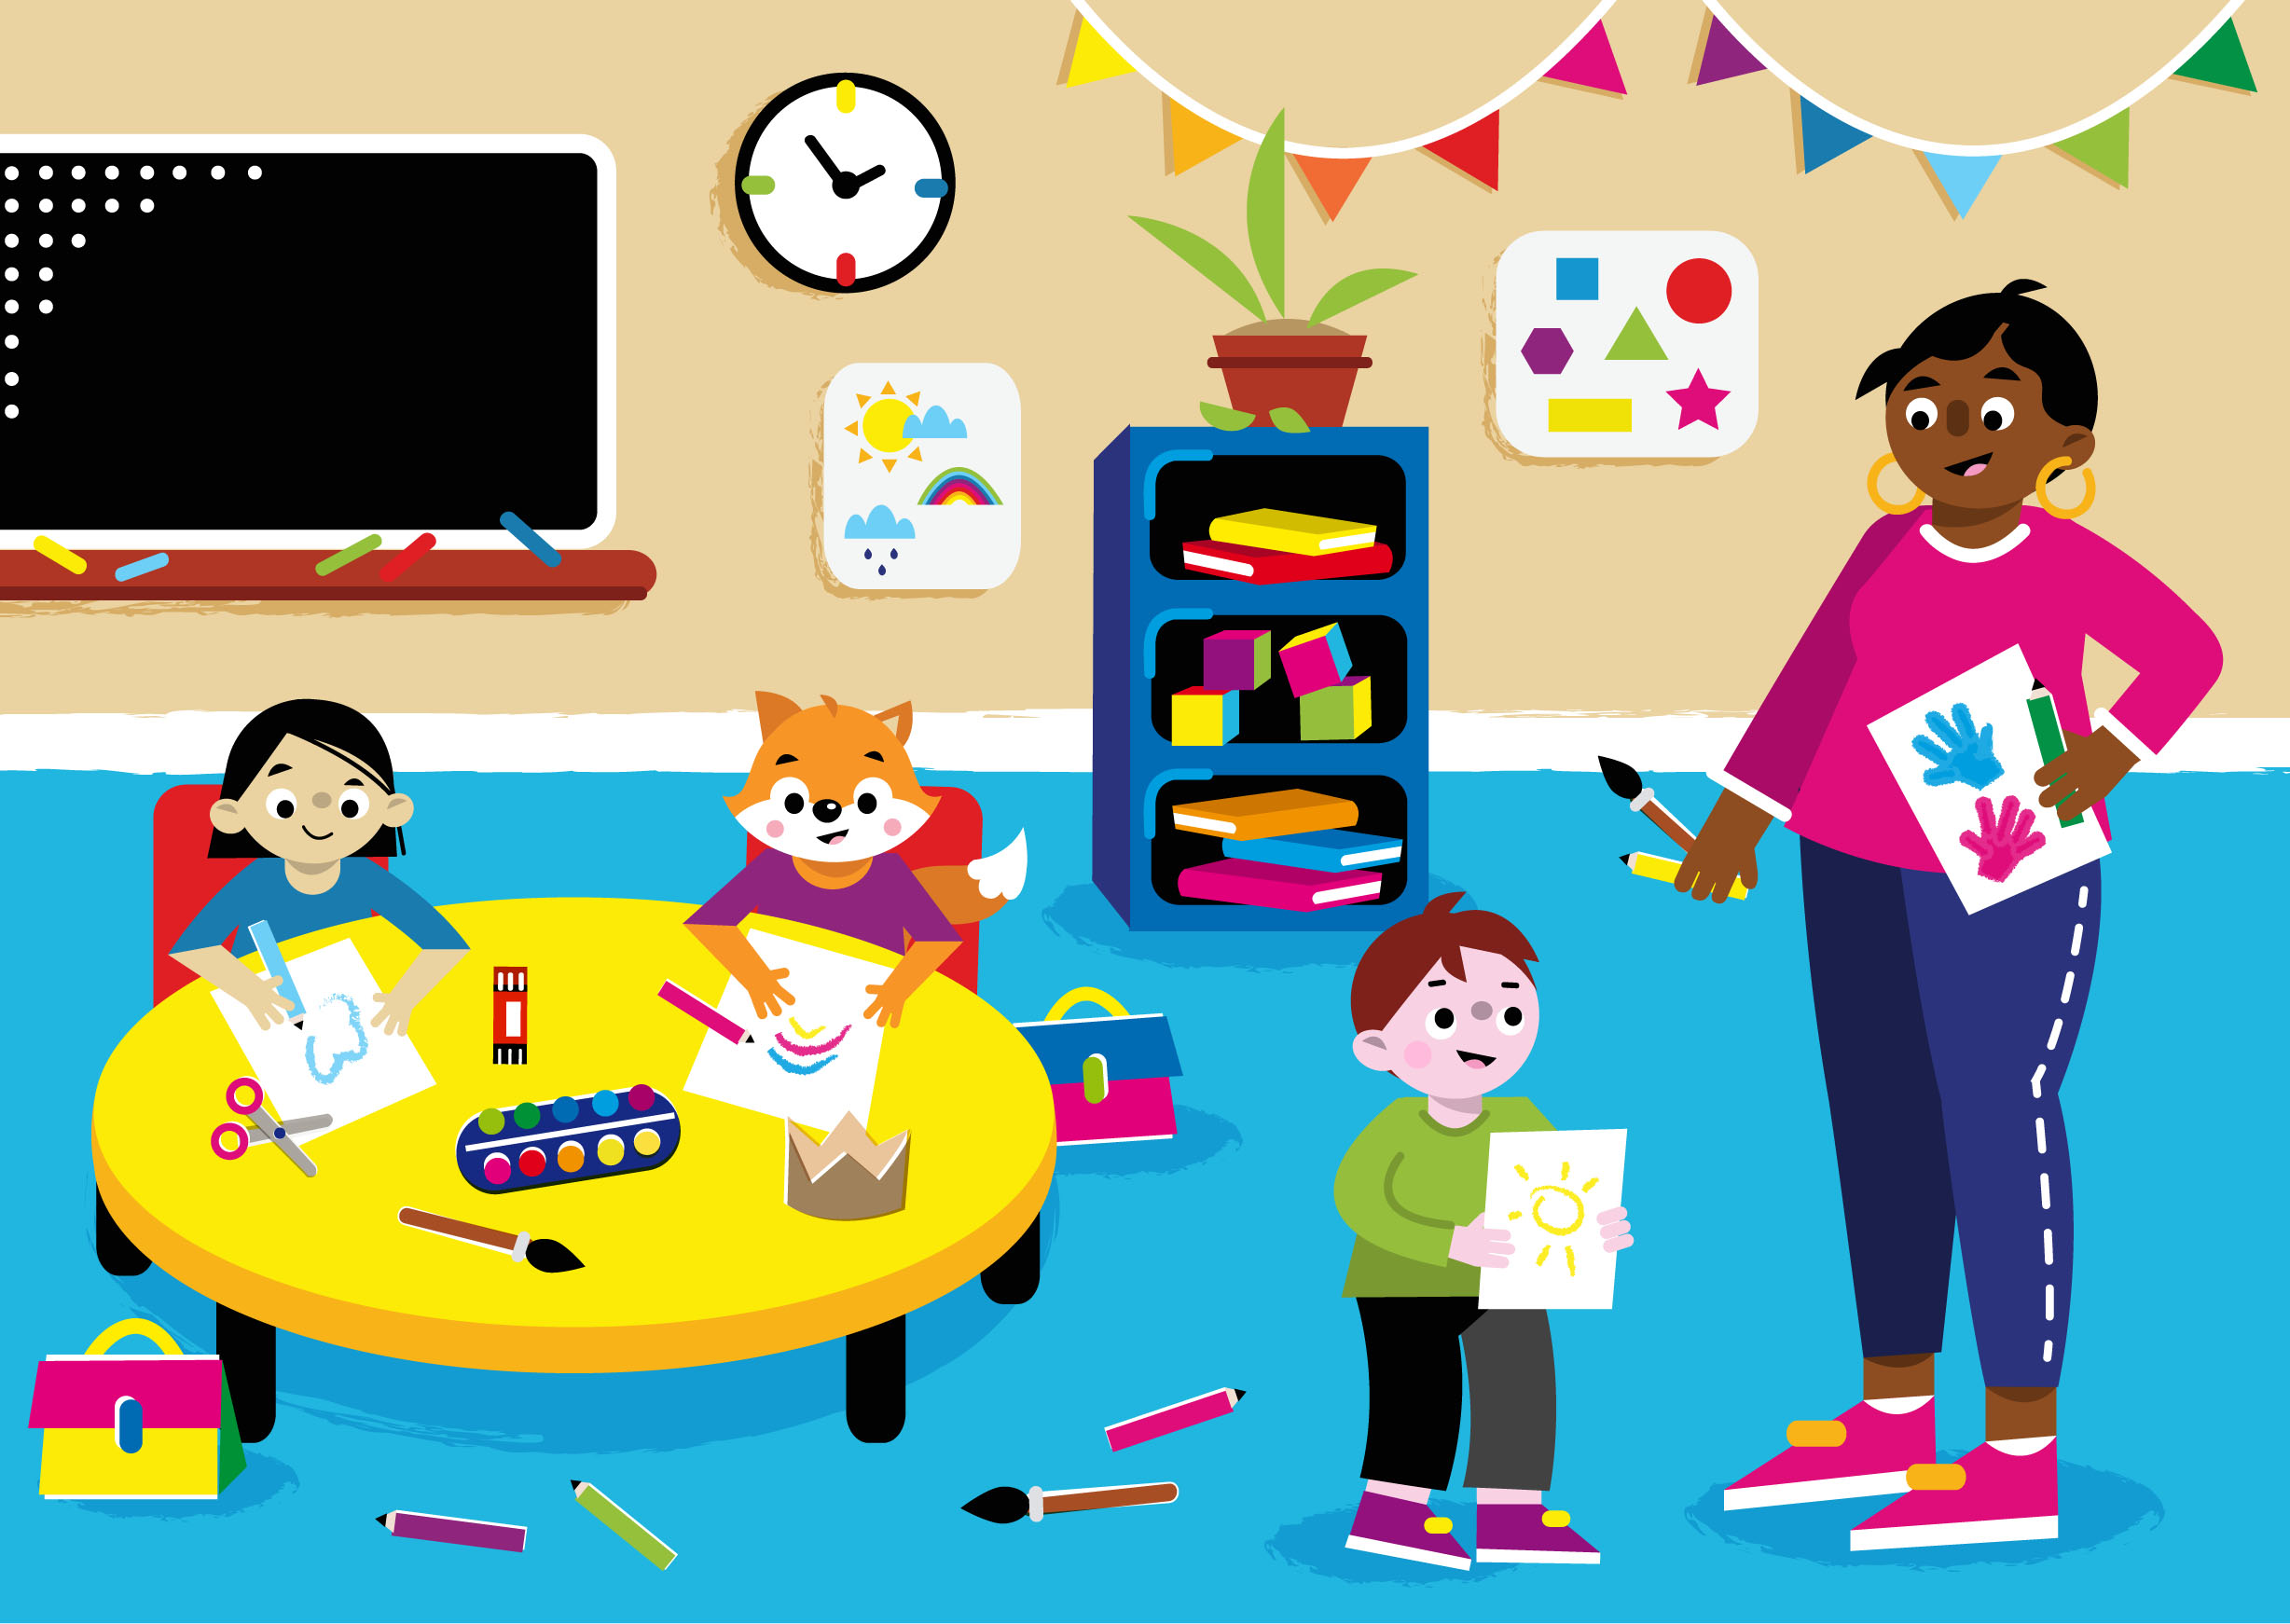 Kindergarten - Vector Illustration © Emeline Barrea, All rights reserved